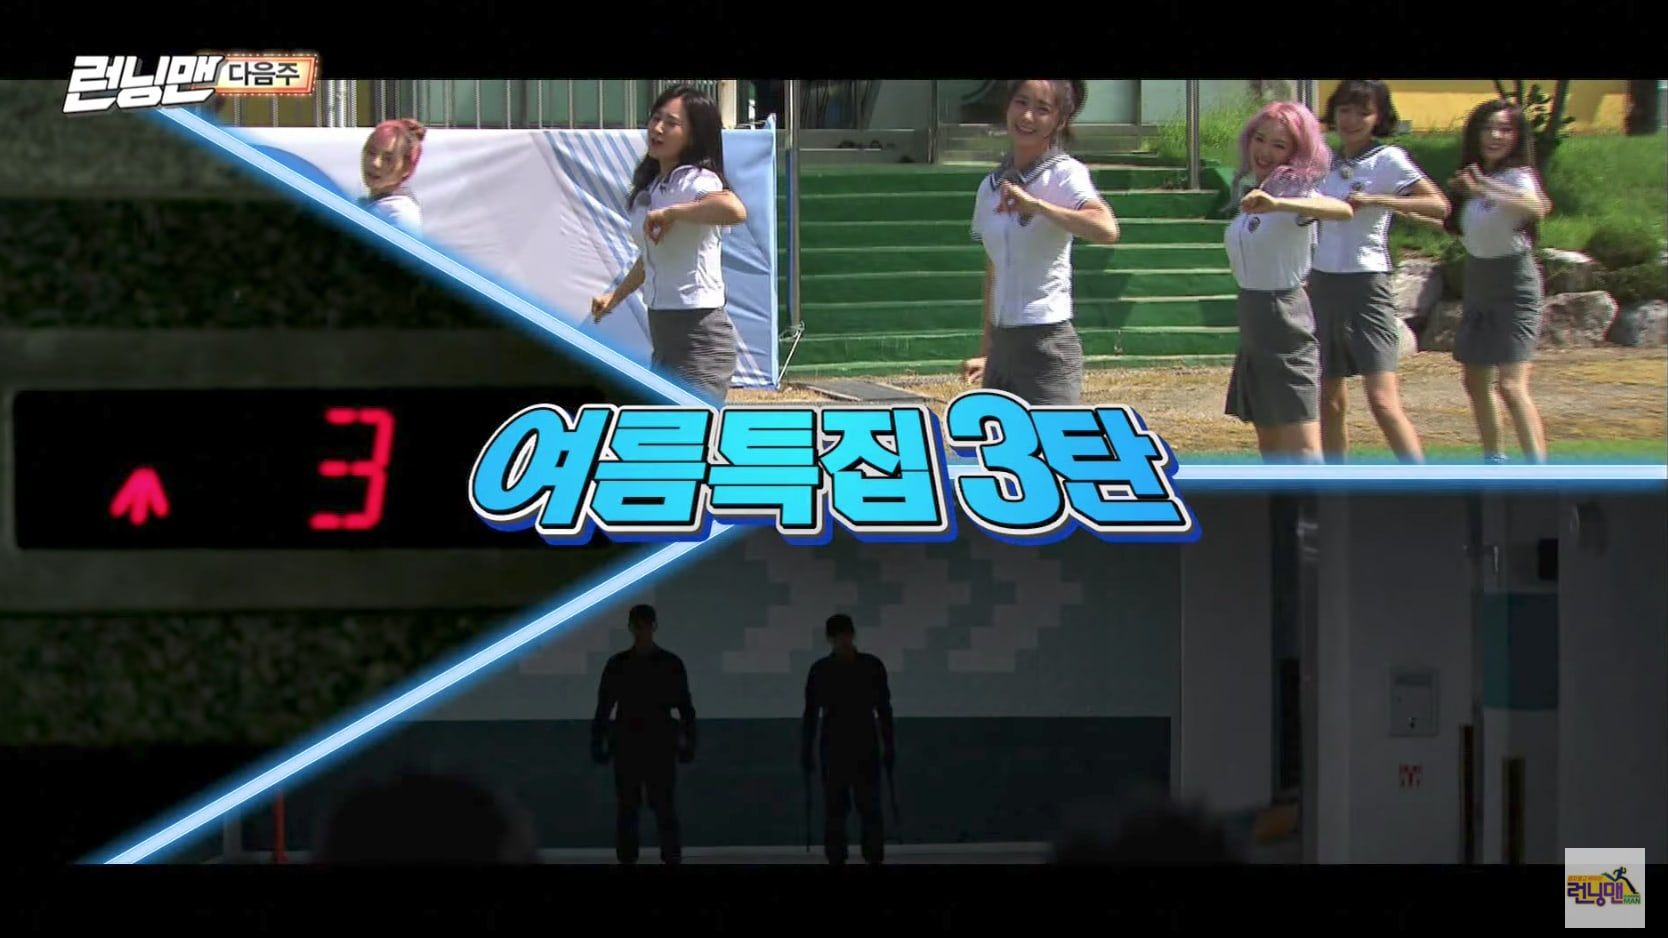 Watch: Running Man Teases Episode Featuring Park Seo Joon, Kang Ha Neul, And Girls Generation